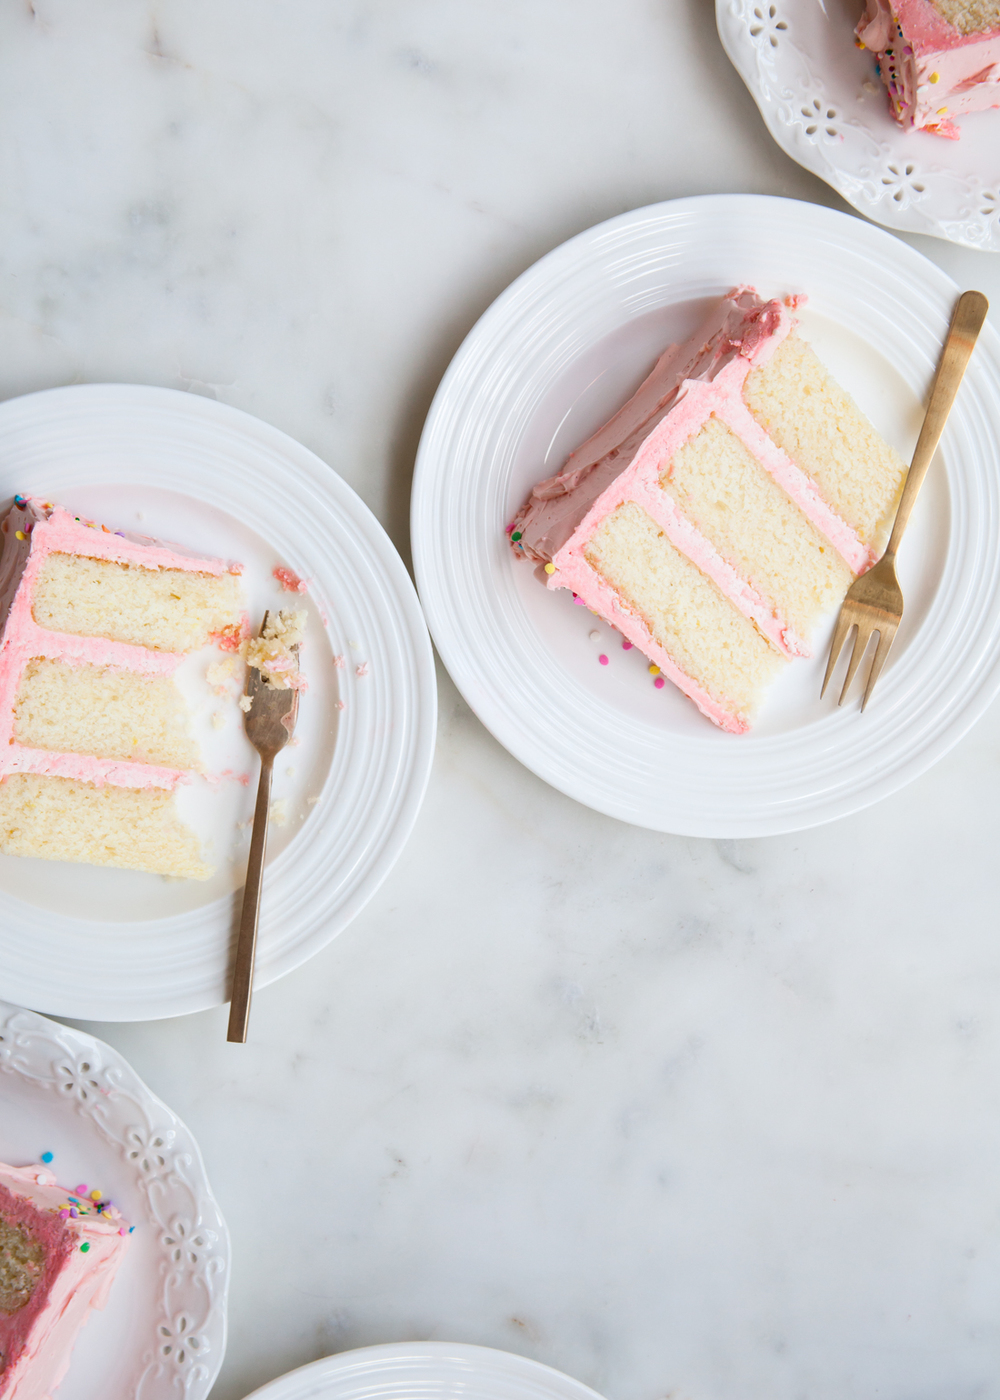 How to make Swiss meringue buttercream + a video tutorial.